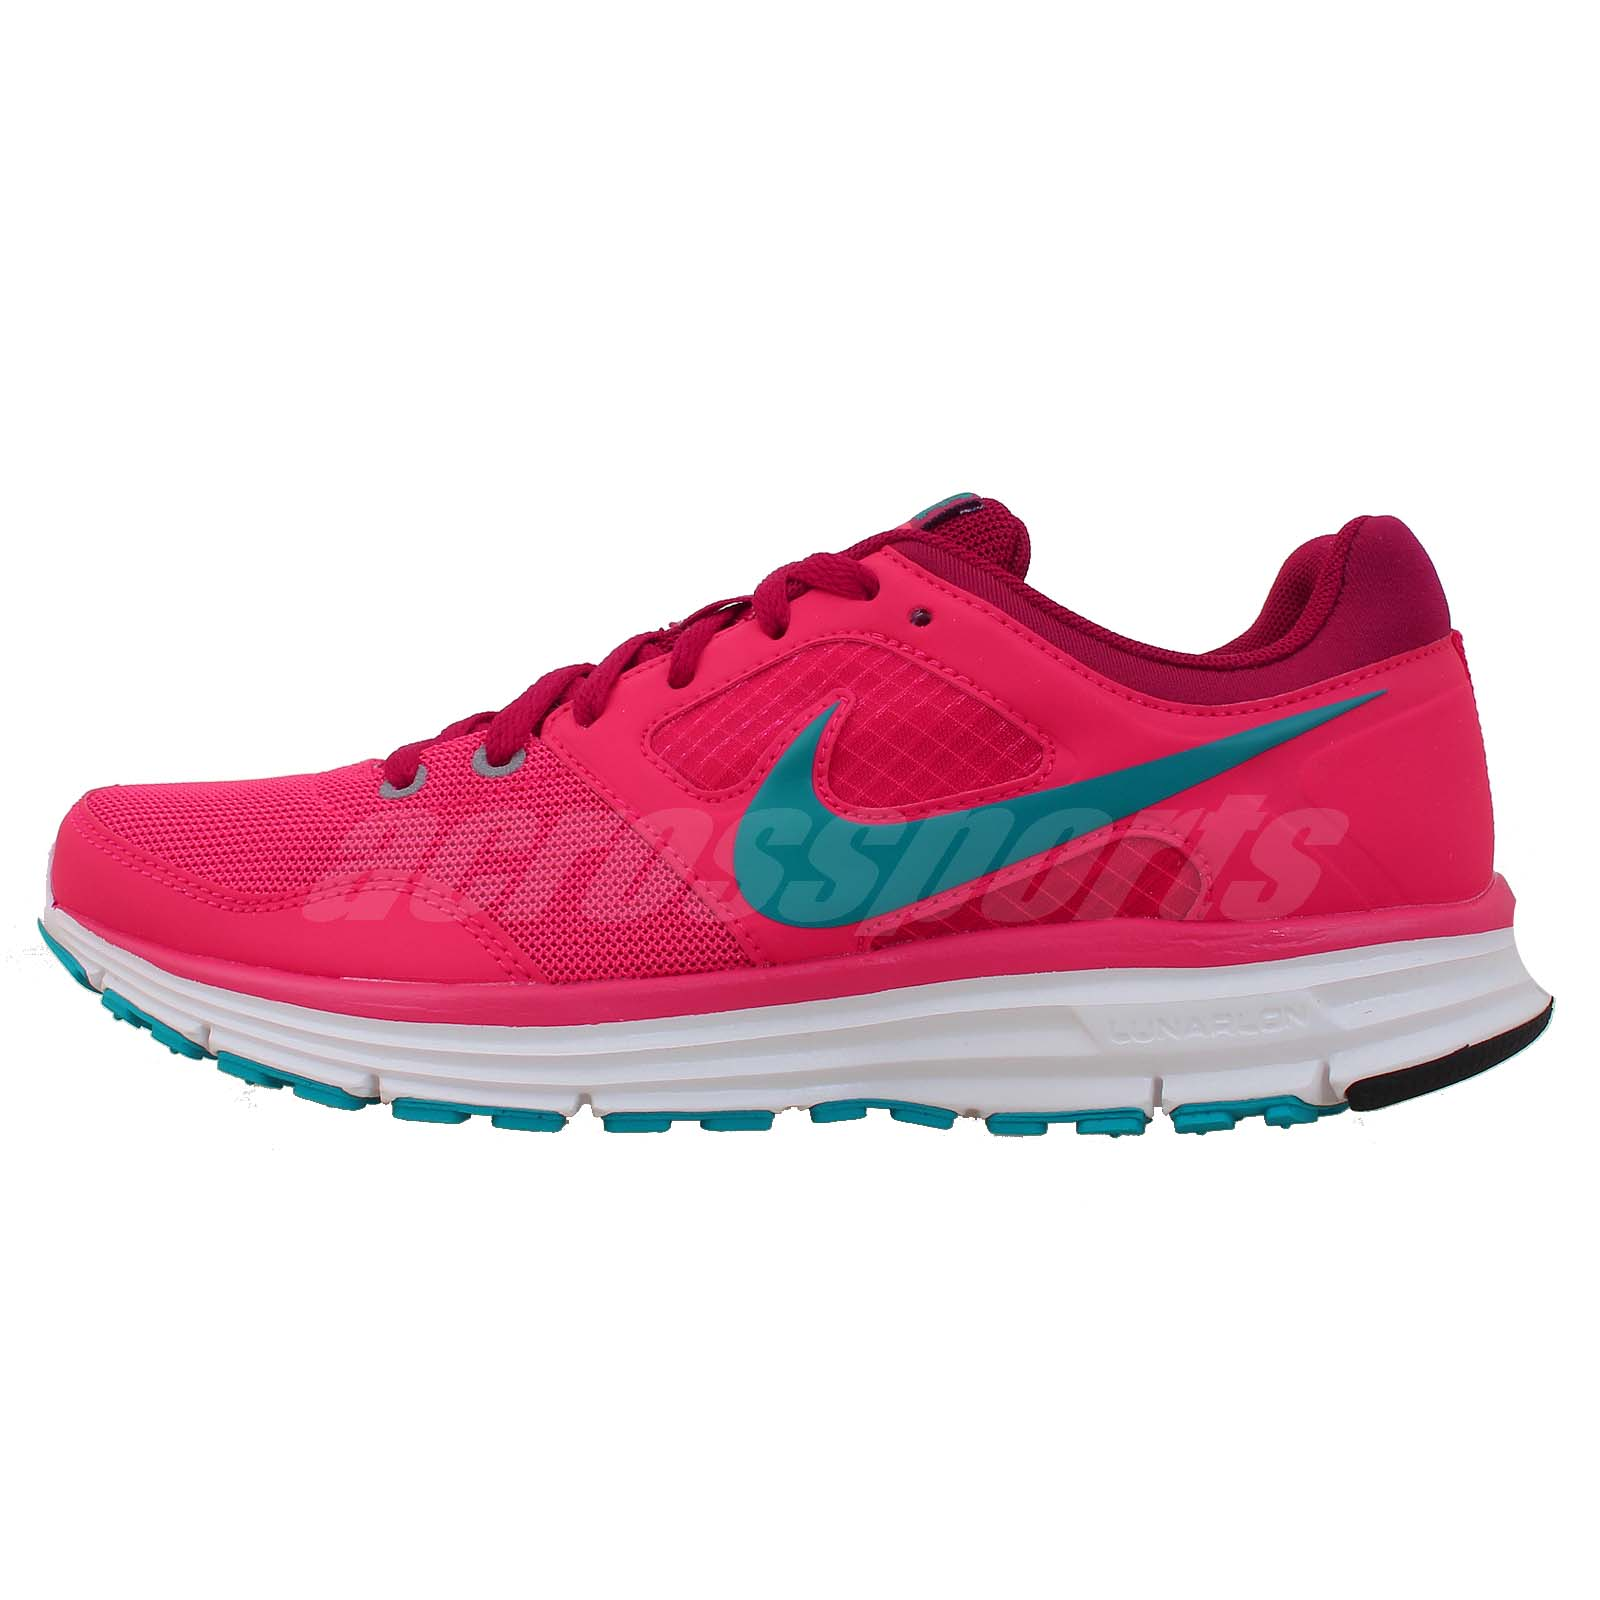 Unique 75 Off Nike Shoes  SALE Nike Lunarlon Training Sneakers Womens From